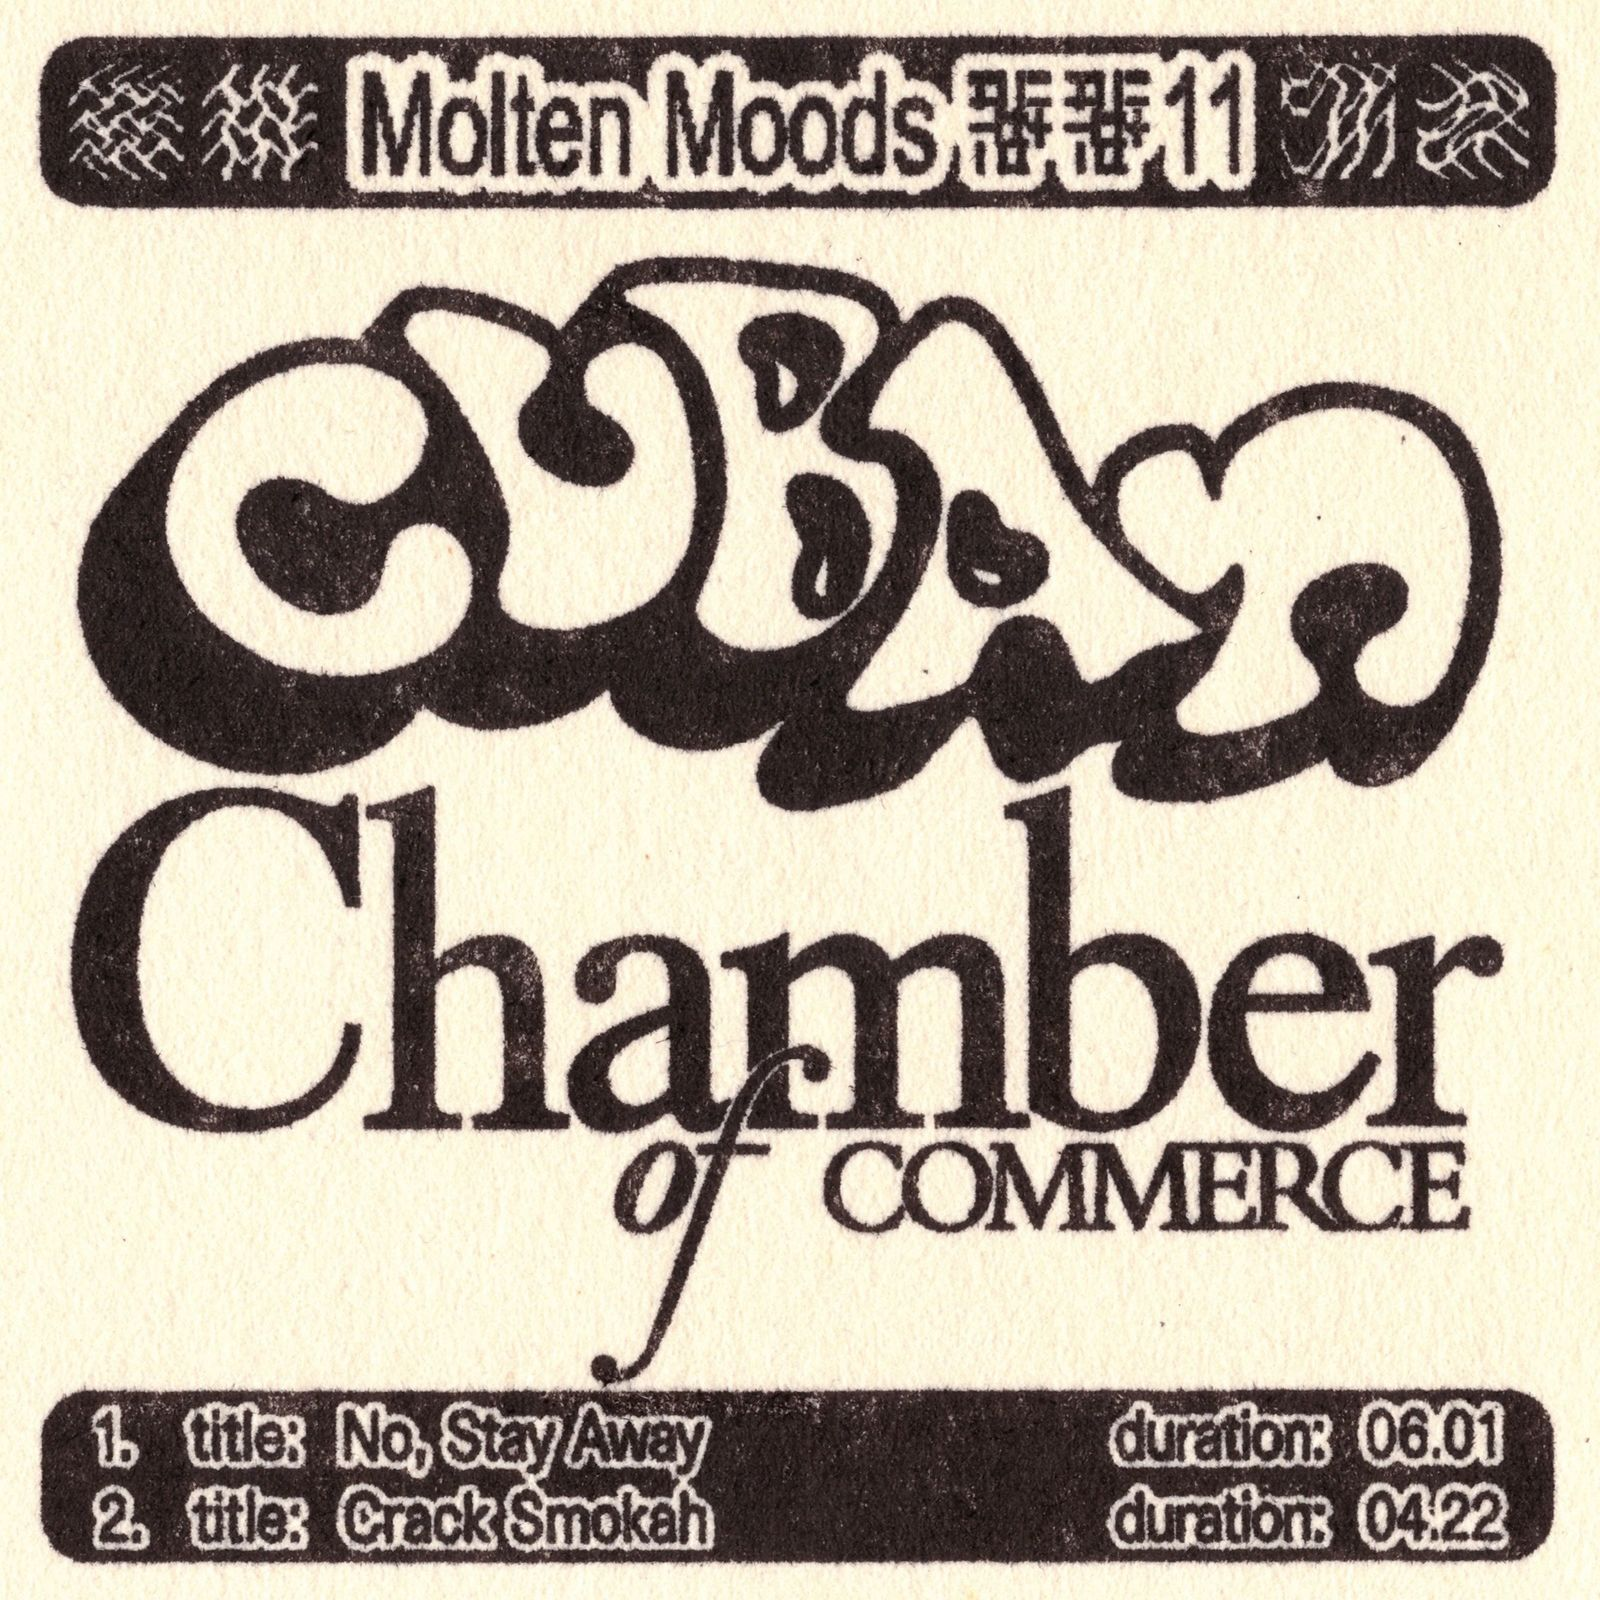 Cuban Chamber of Commerce - No, Stay Away (Download Code)